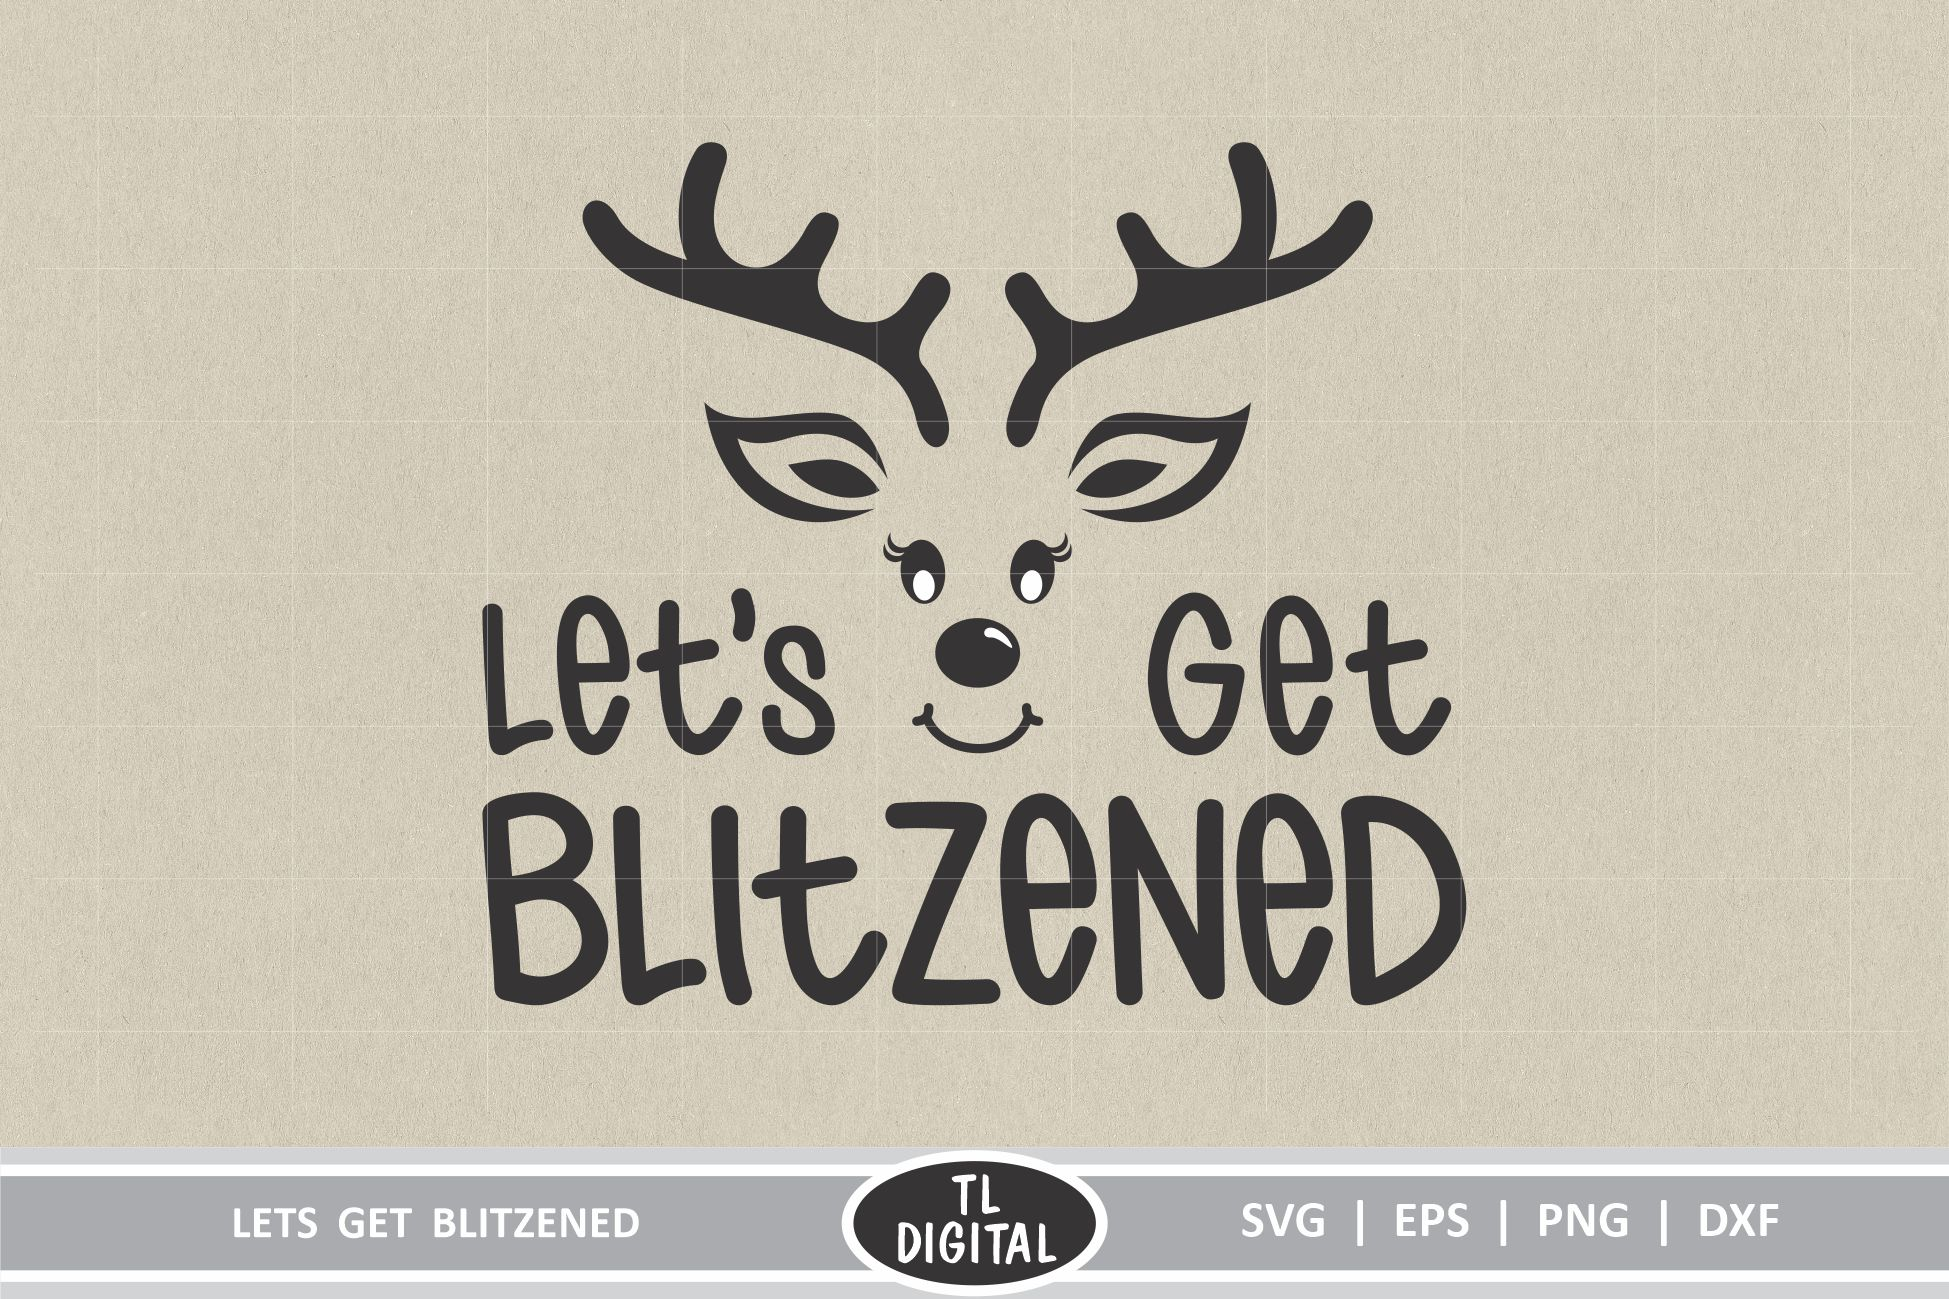 Download Free Lets Get Blitzened Christmas Graphic Graphic By Tl Digital for Cricut Explore, Silhouette and other cutting machines.